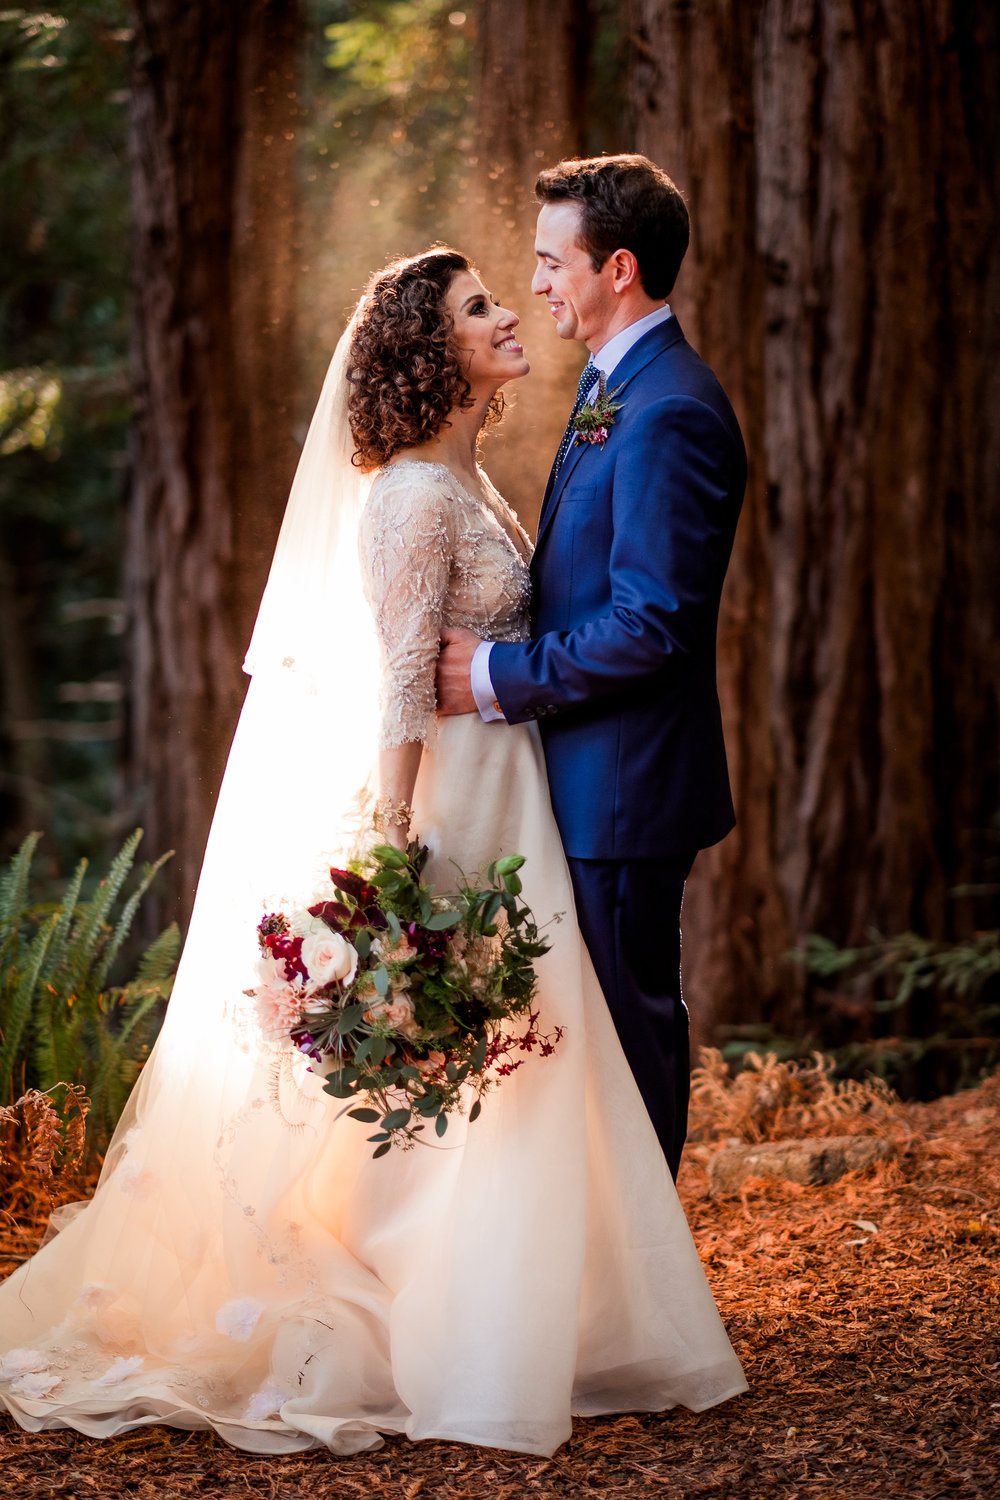 Magical Woodland California Wedding Venue,  Sequoia Retreat Center Wedding, Planning by Art & Soul Events, Nordica Photography, Bride & Groom, Air Plant bouquet with flowers, Monique Lhuillier gown and Claire Pettibone Veil